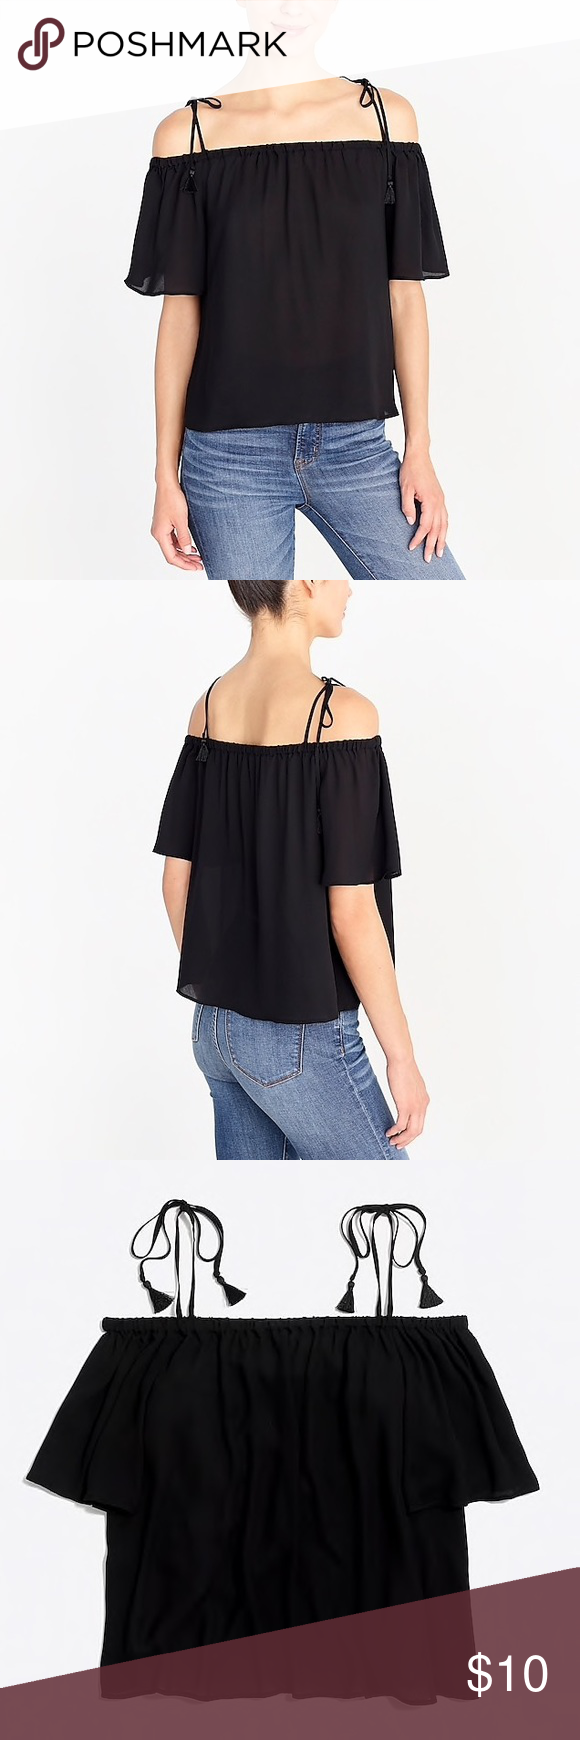 6cc0724532b42 Cold-shoulder tie tank top Slightly sheer. Poly. Machine wash. Import. Item  J0869. J. Crew Tops